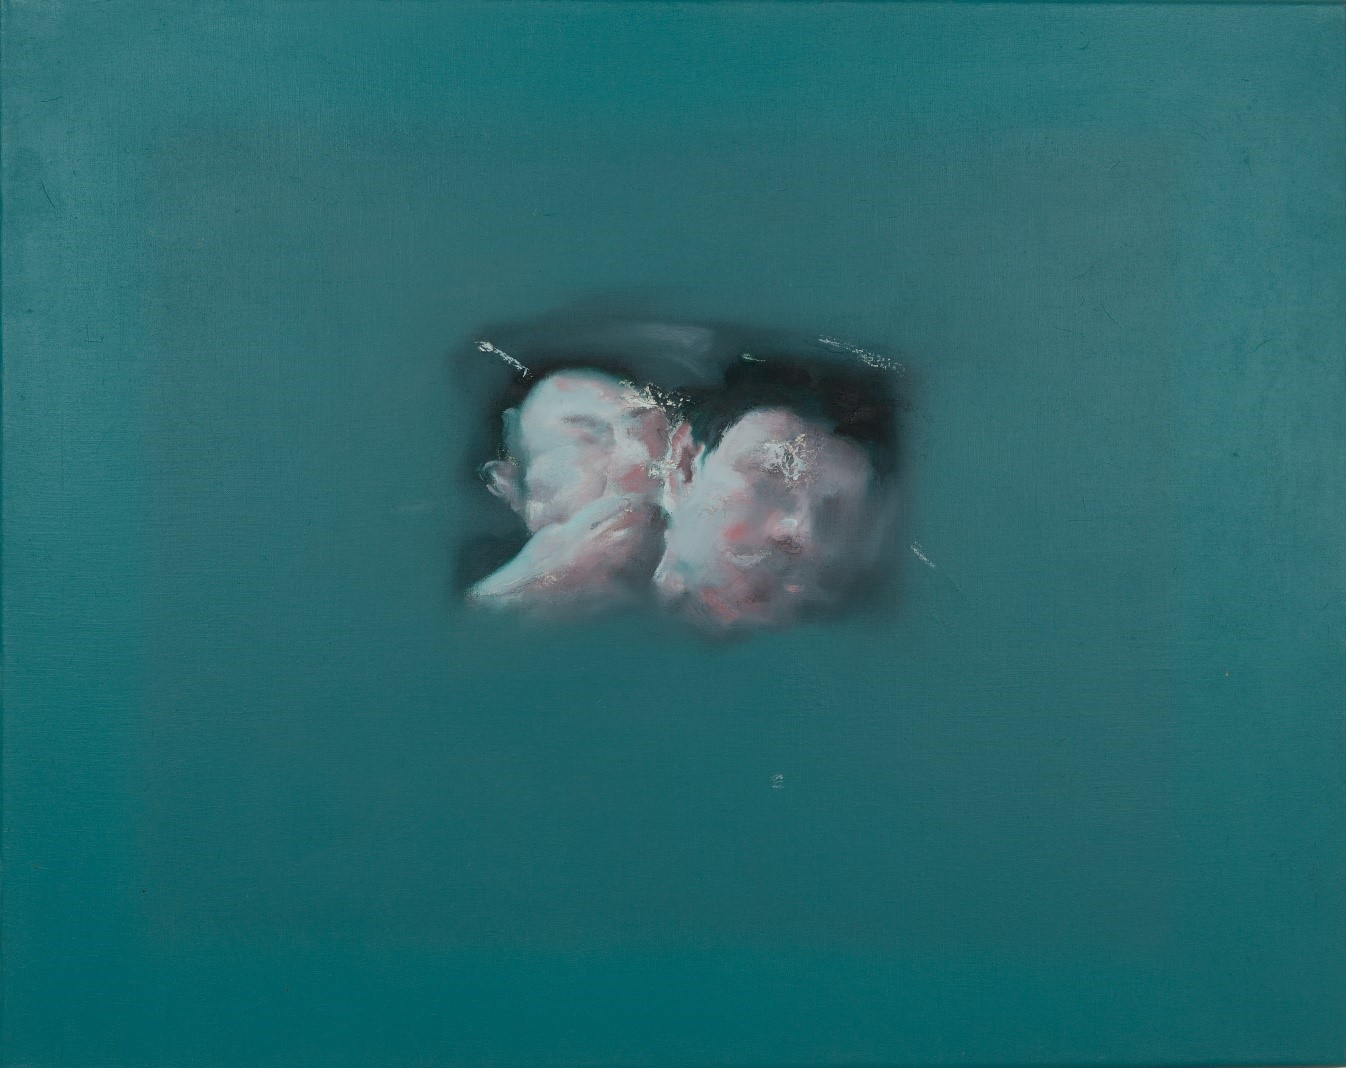 Chen Liangjie, Whisper, Oil on canvas, signed and dated 1997, 65x80cm